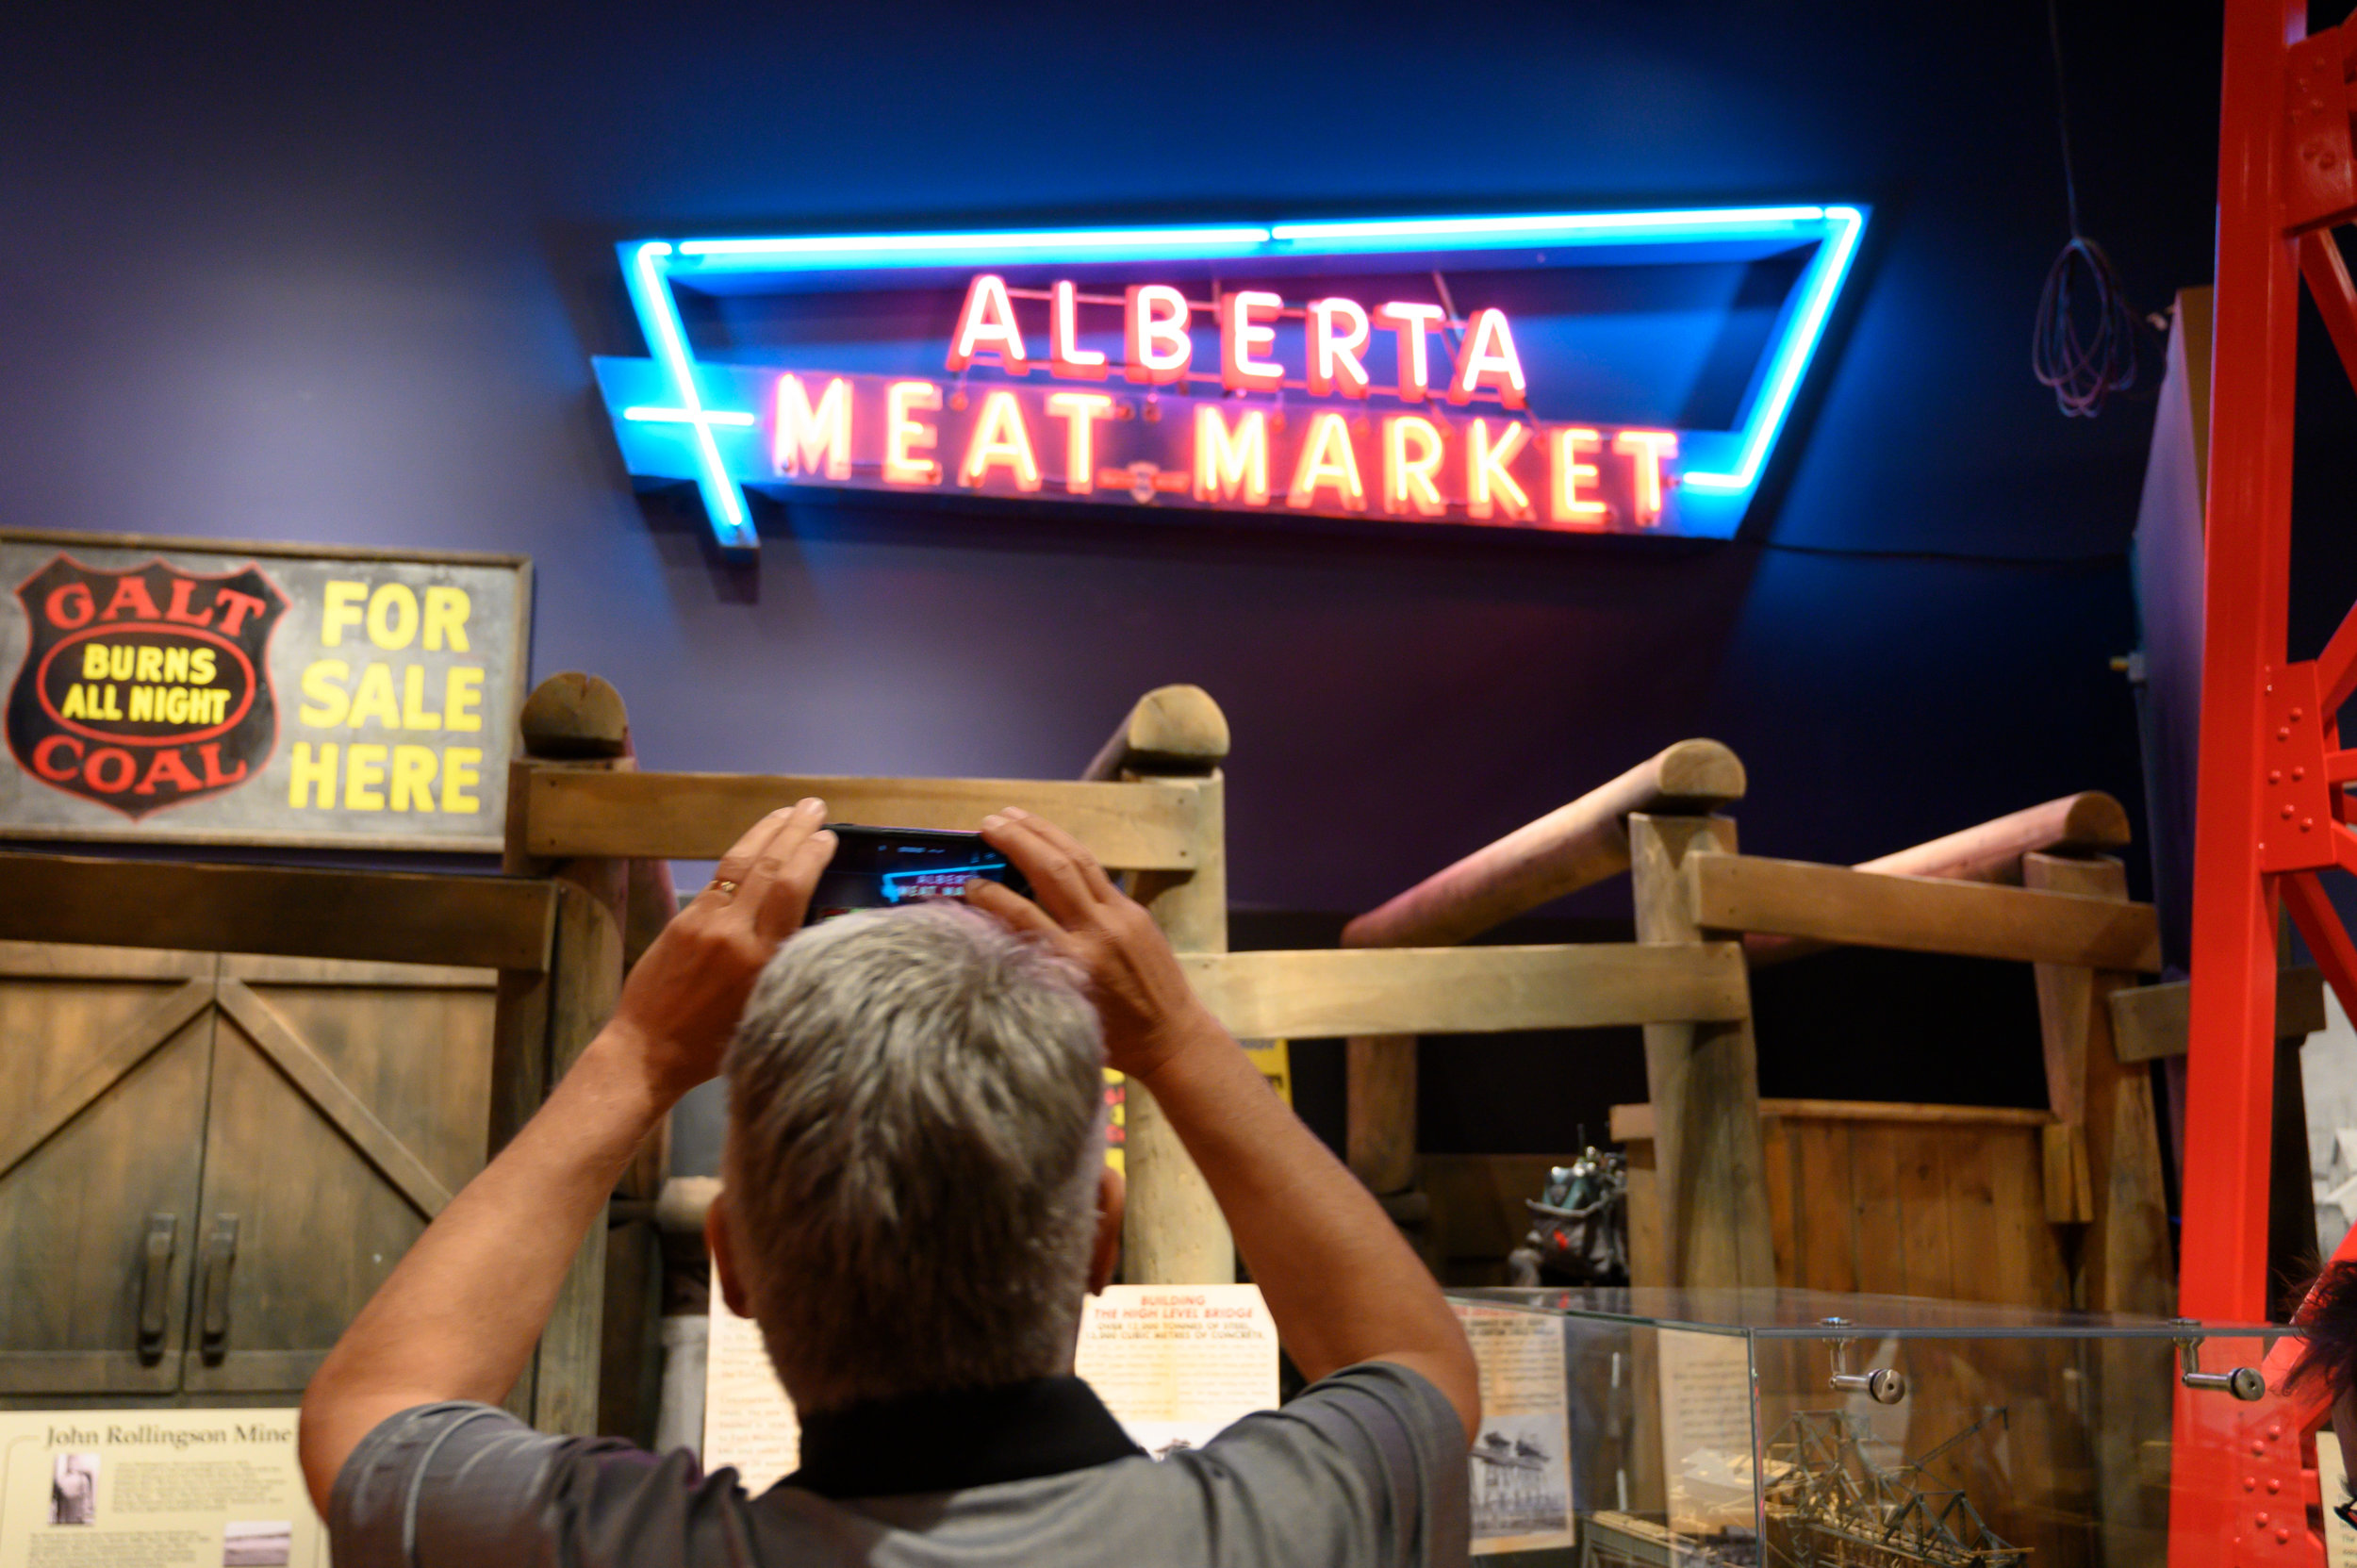 CTV Reporter Terry Vogt taking a video of the inaugural lighting of the Alberta Meat Market sign in its permanent home in the Discovery Hall of the Galt Museum & Archives.